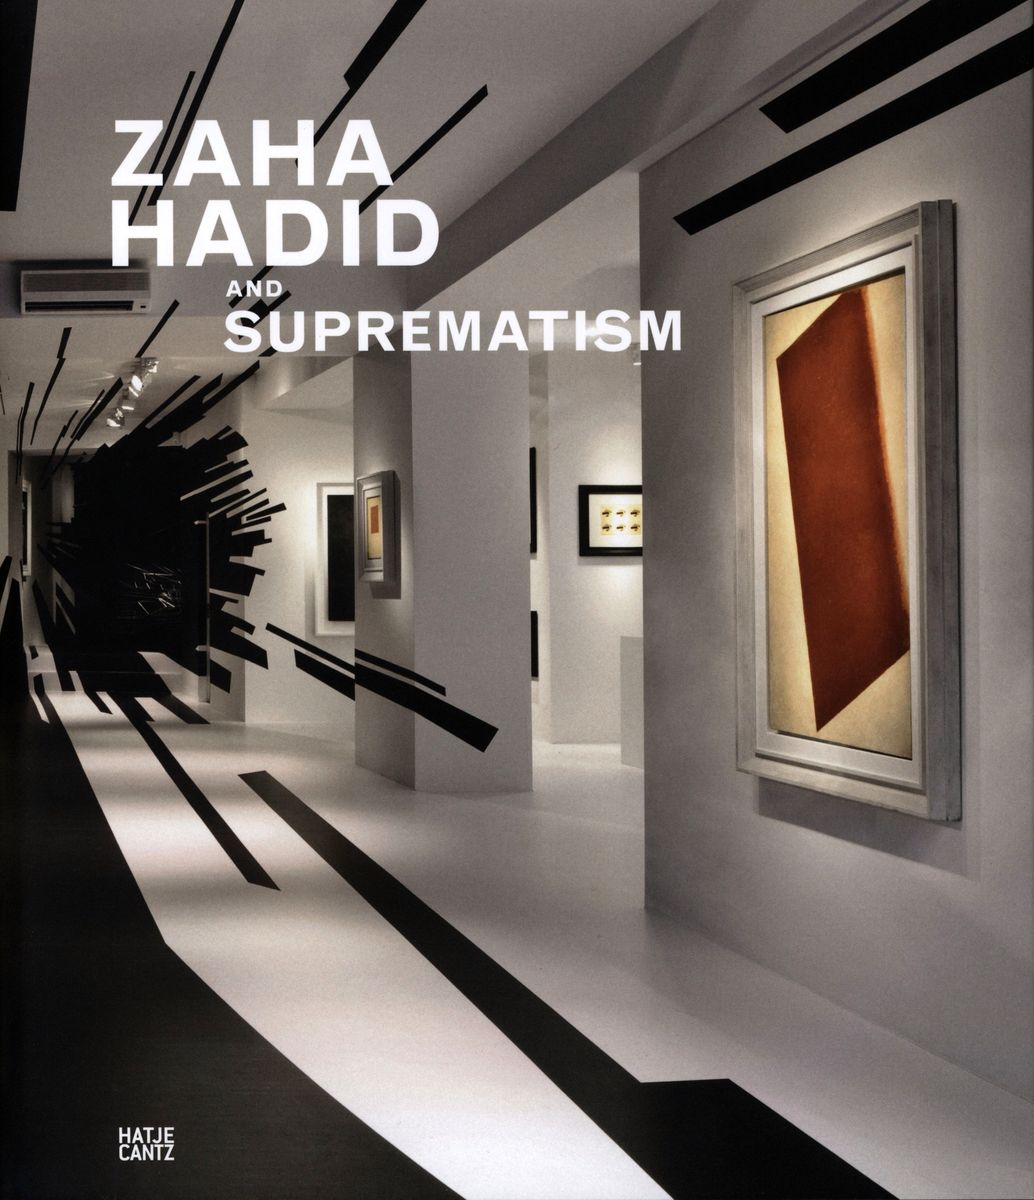 Zaha Hadid and suprematism по 1 500.00 руб от изд. Hatje Cantz